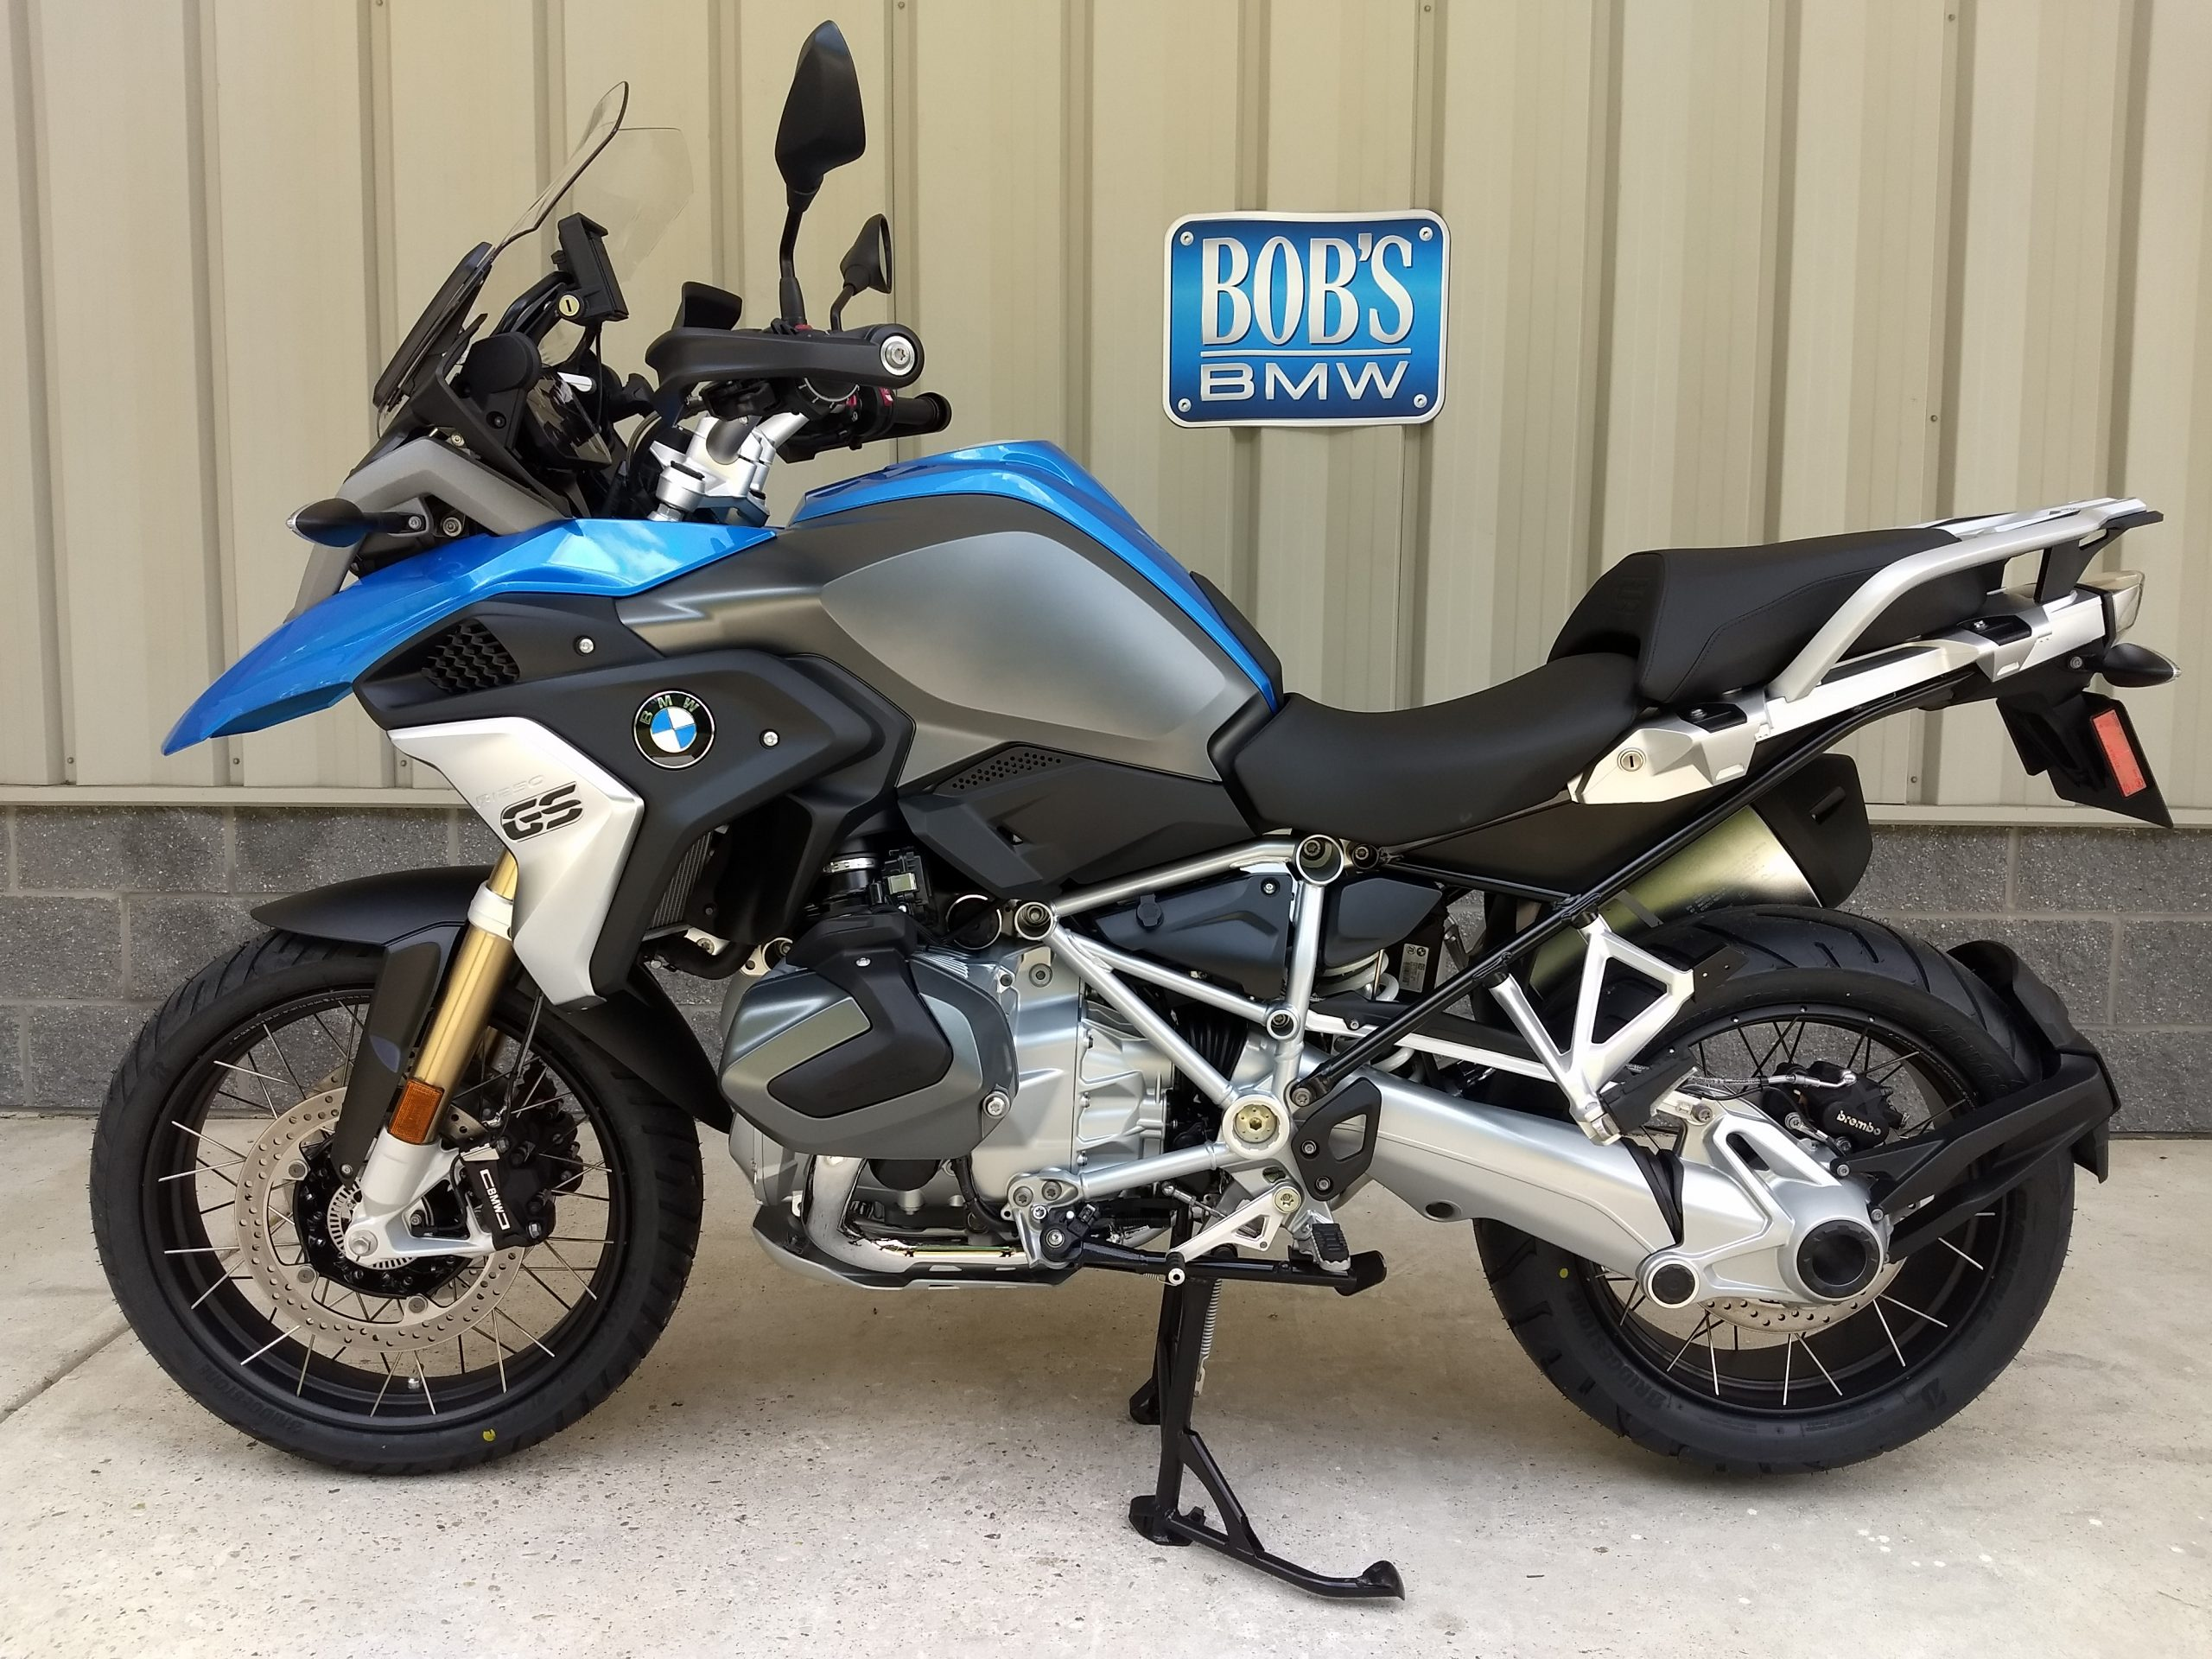 2020 bmw r1250gs | bob's bmw motorcycles